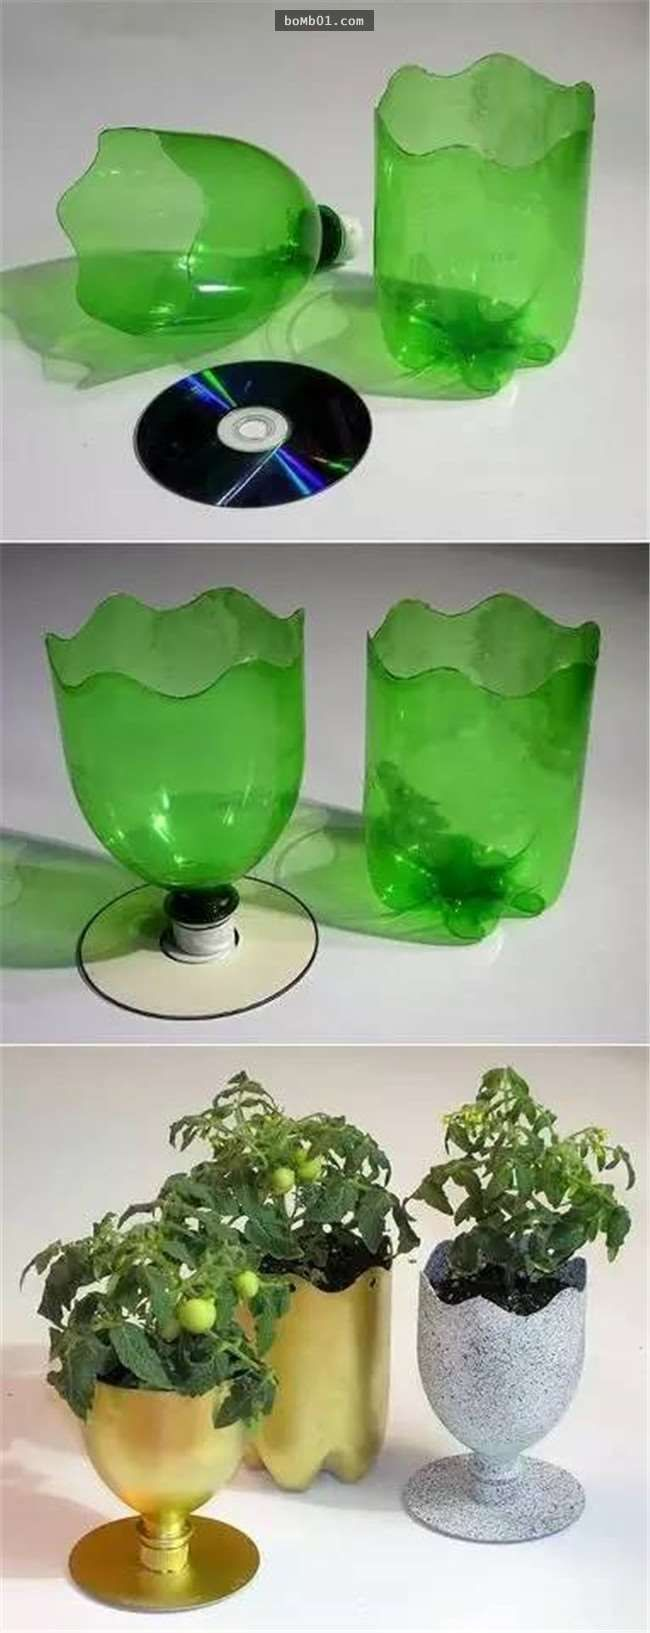 15+ Awesome DIY Projects Made With Plastic Bottles